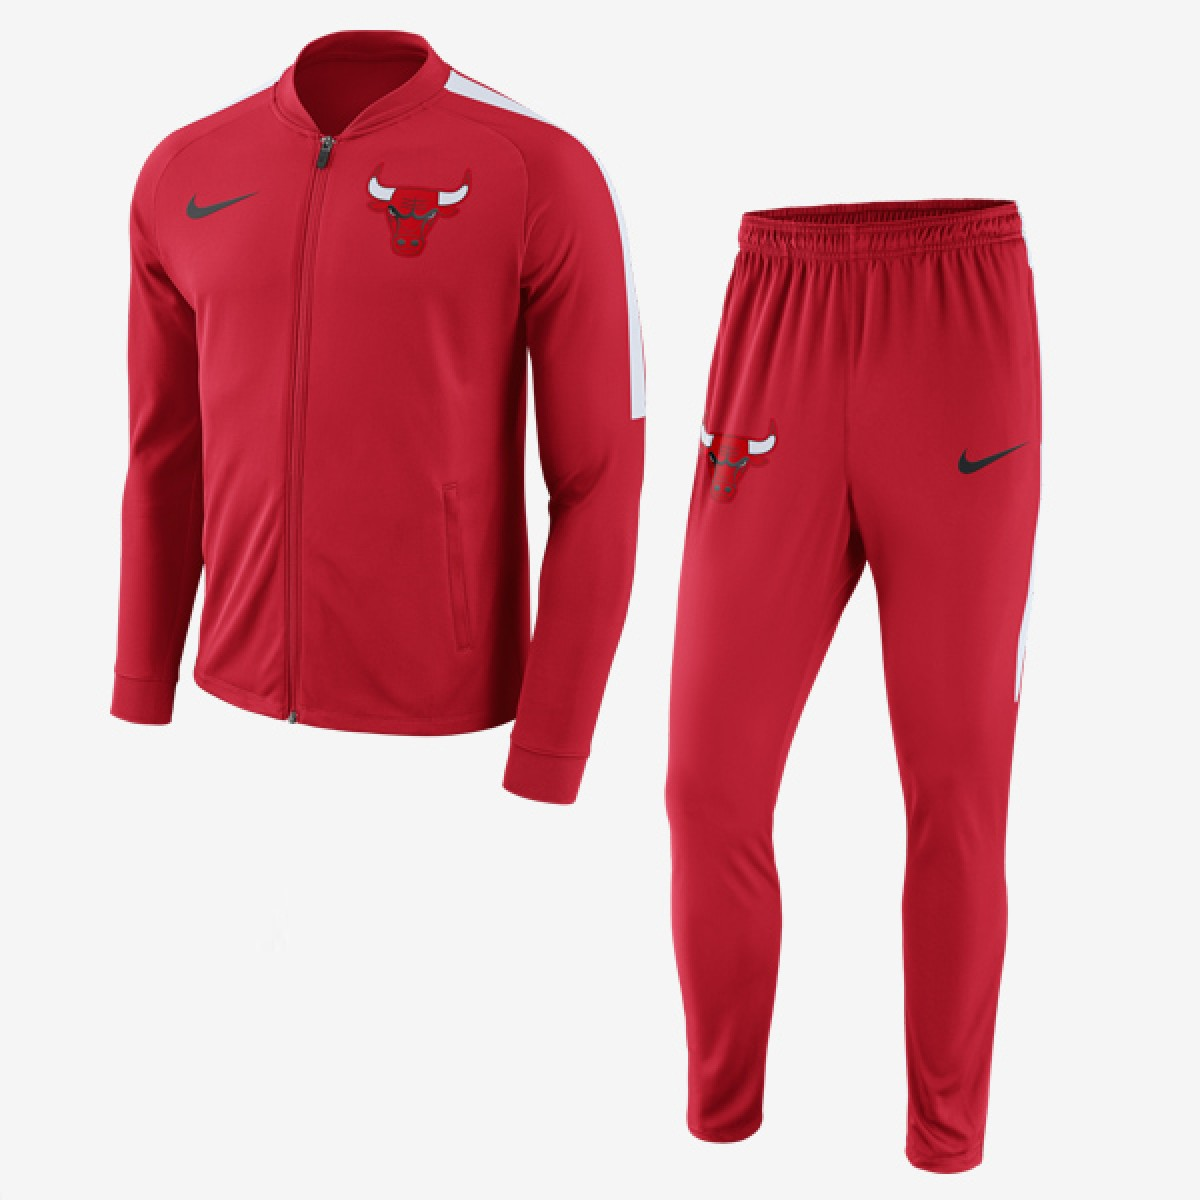 Nike NBA Chicago Bulls Track Suit 'Red'